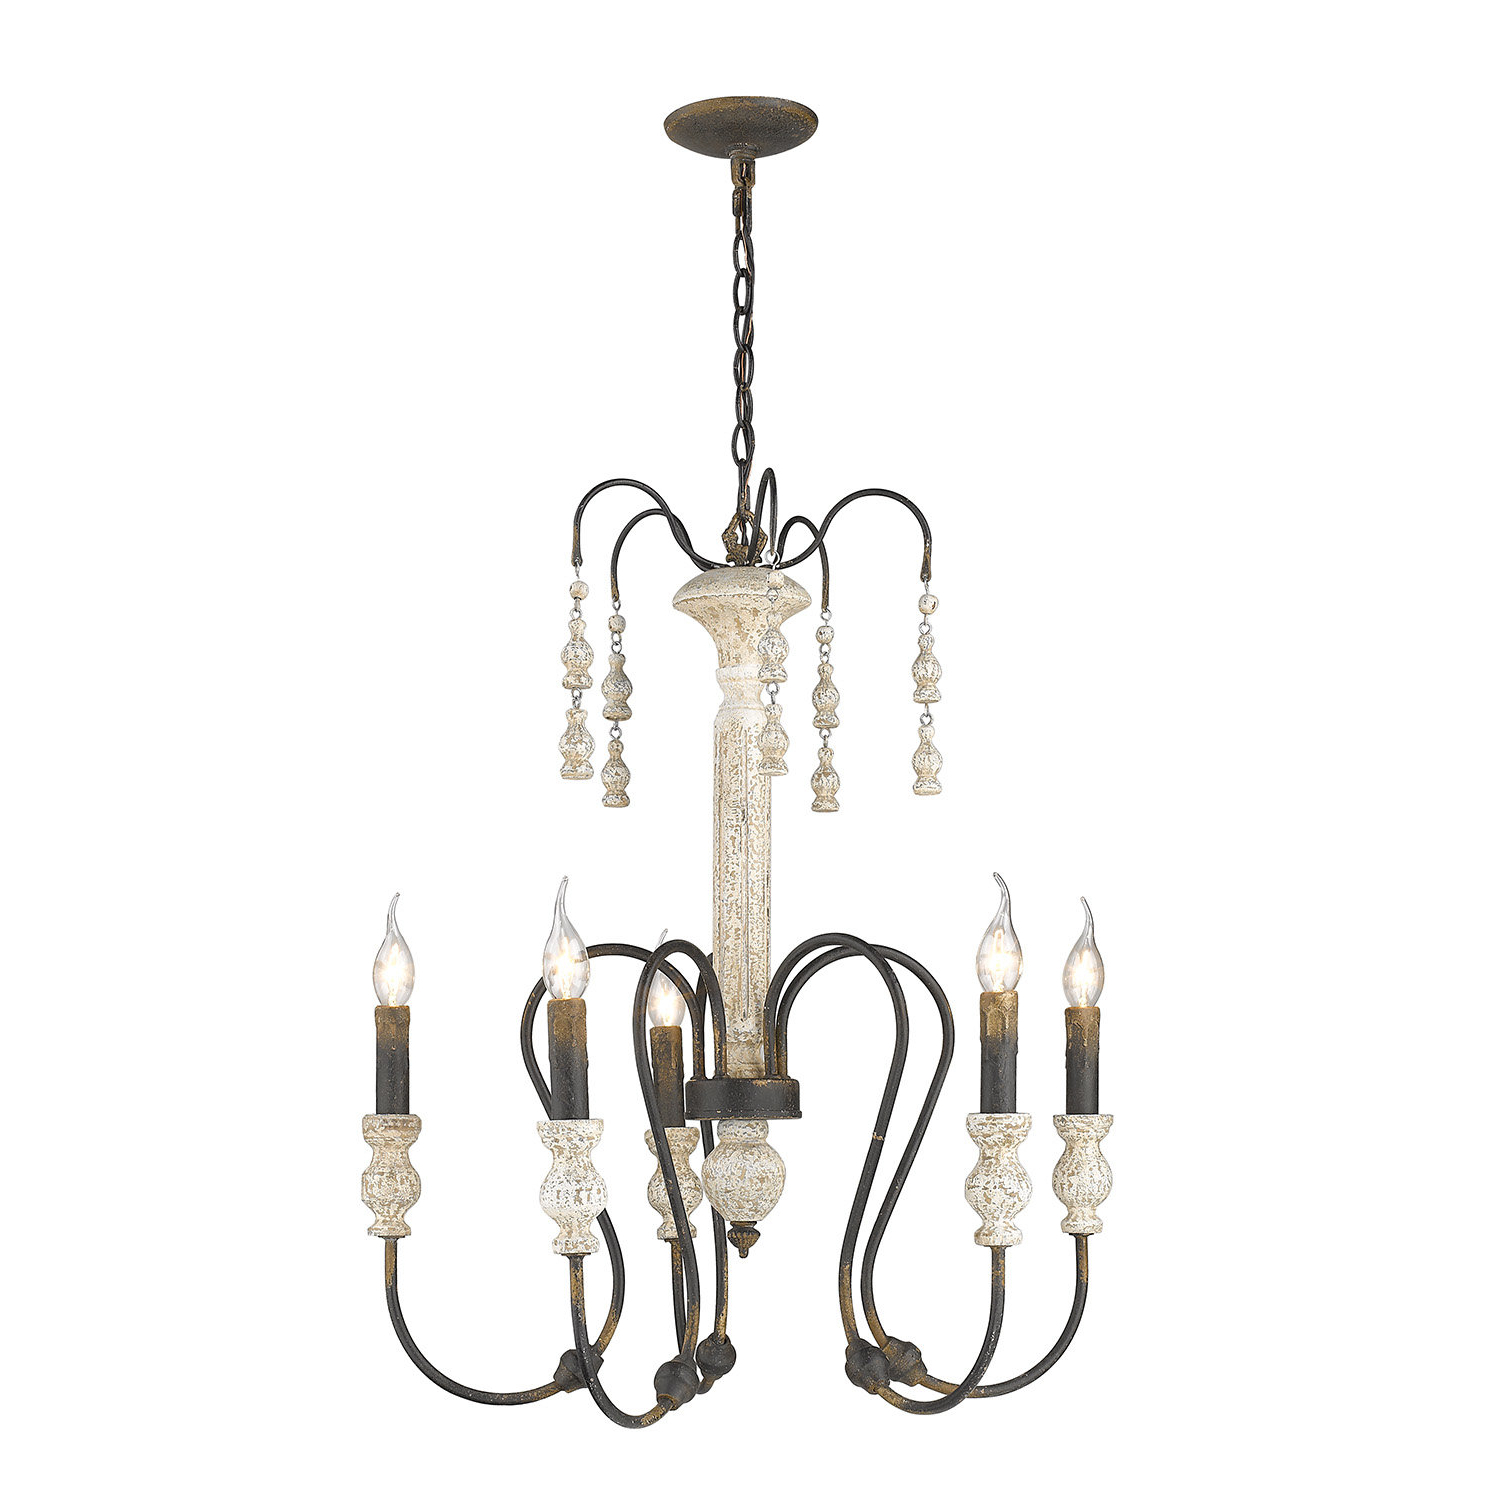 Newest Corneau 5-Light Chandeliers with regard to Sherrie 5-Light Candle Style Chandelier